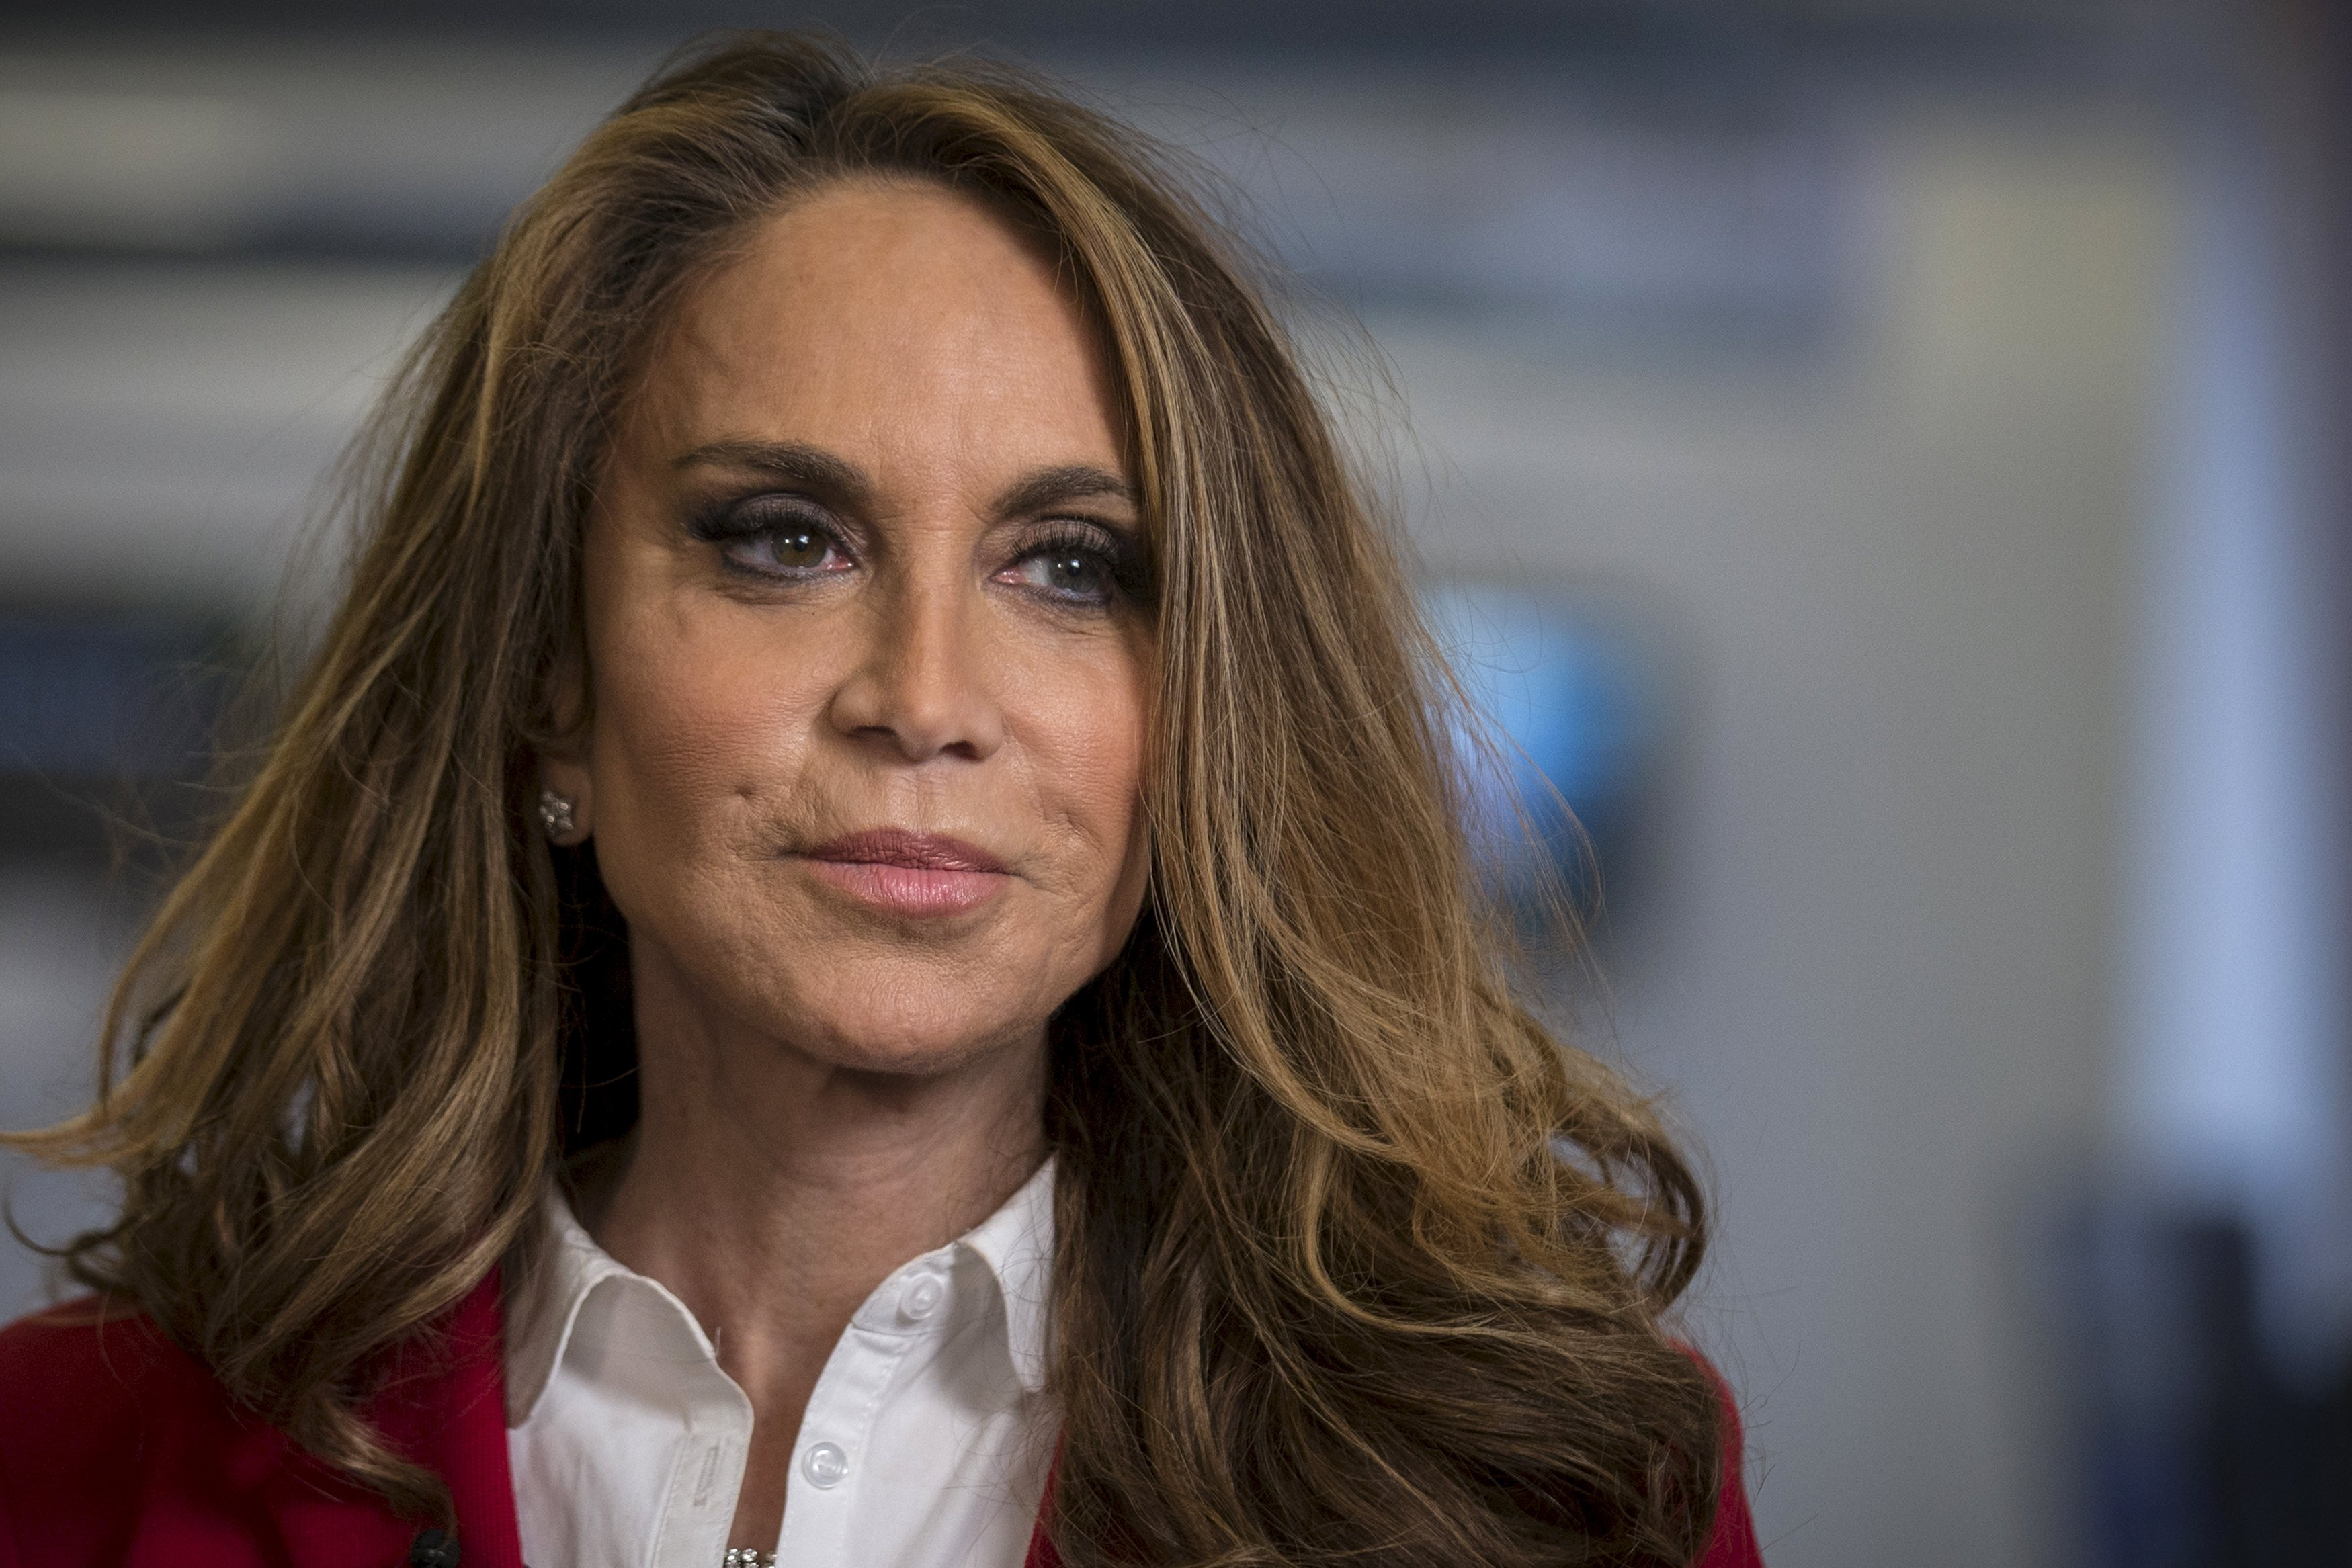 Political blogger Pamela Geller, American Freedom Defense Initiative's founder, speaks during an interview in New York May 28, 2015.  REUTERS/Brendan McDermid